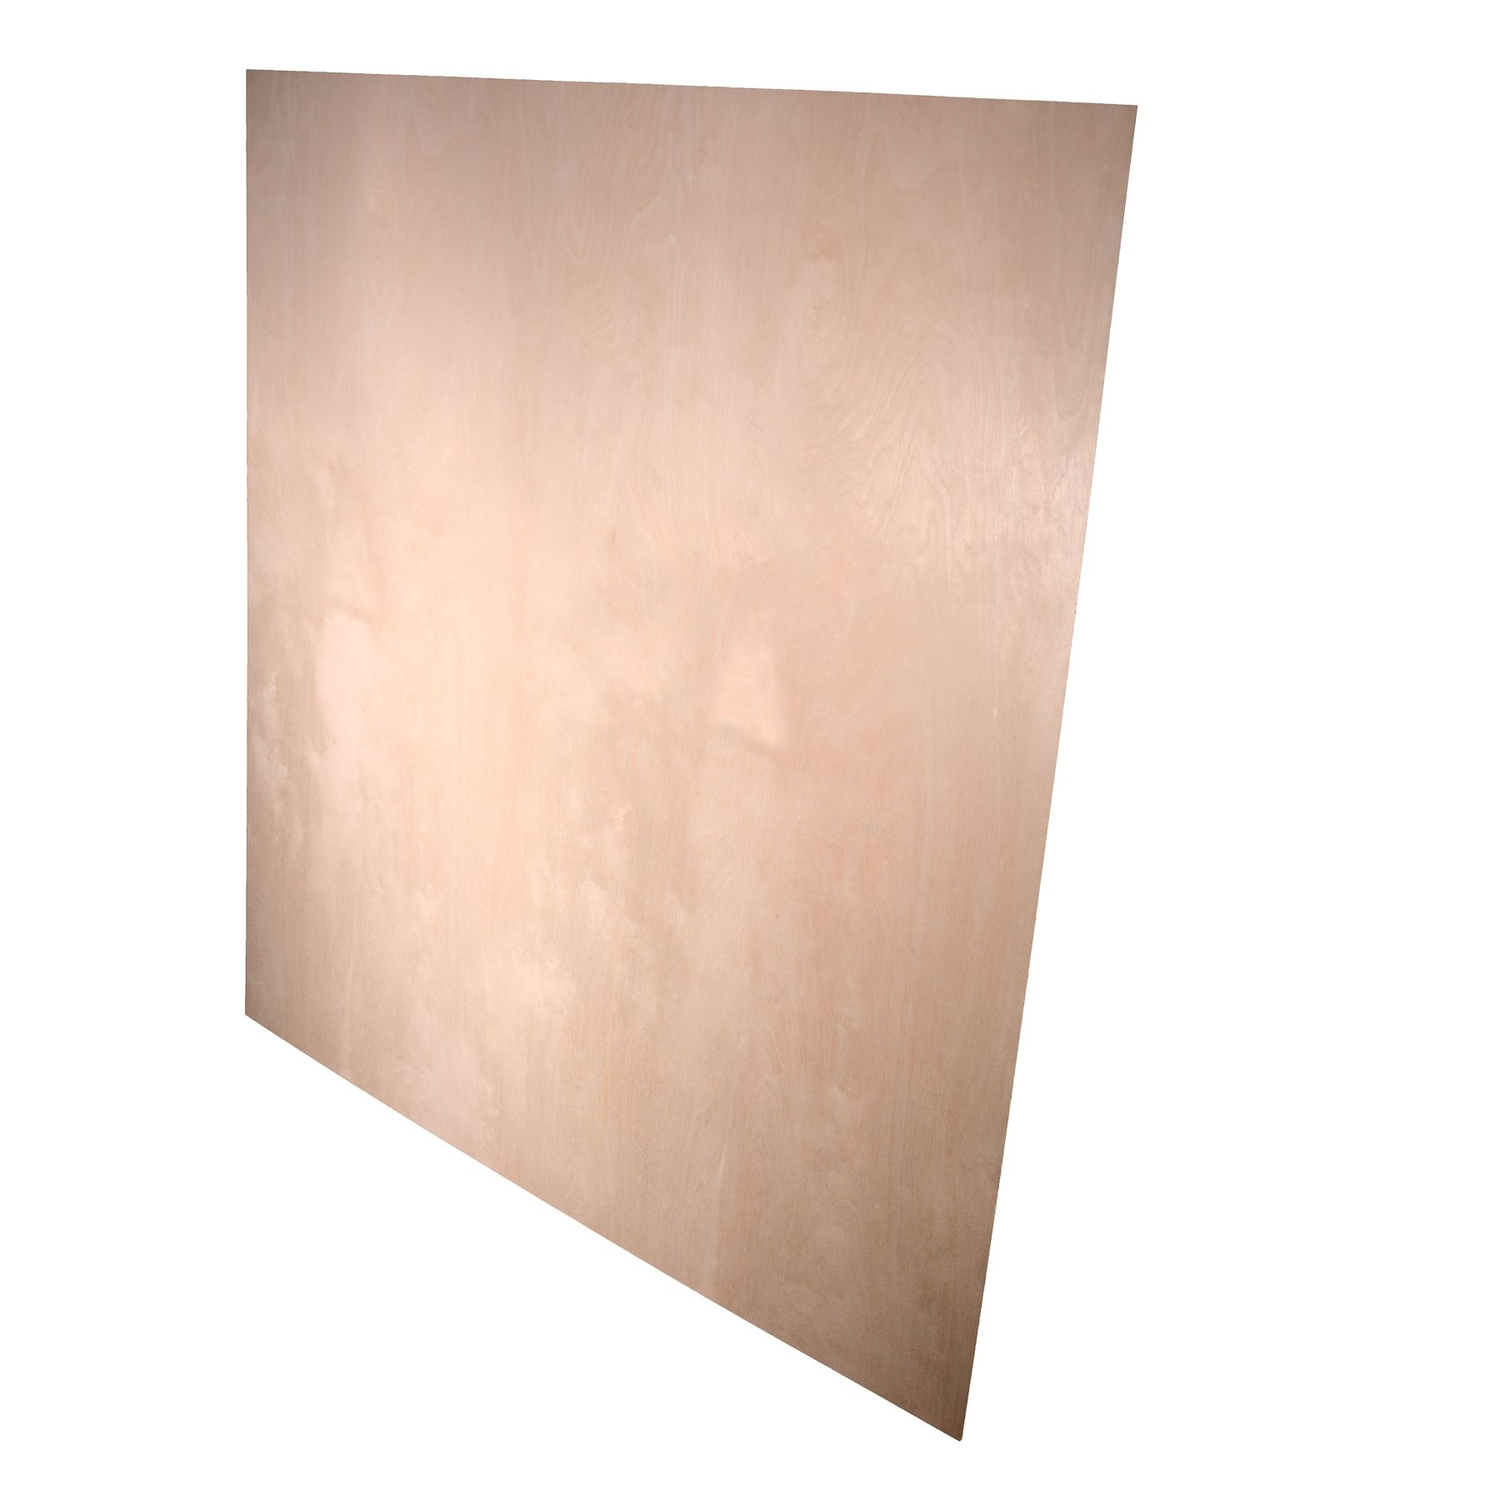 Alexandria Moulding  0.5 in.  x 4 ft. L x 4 ft. W Plywood